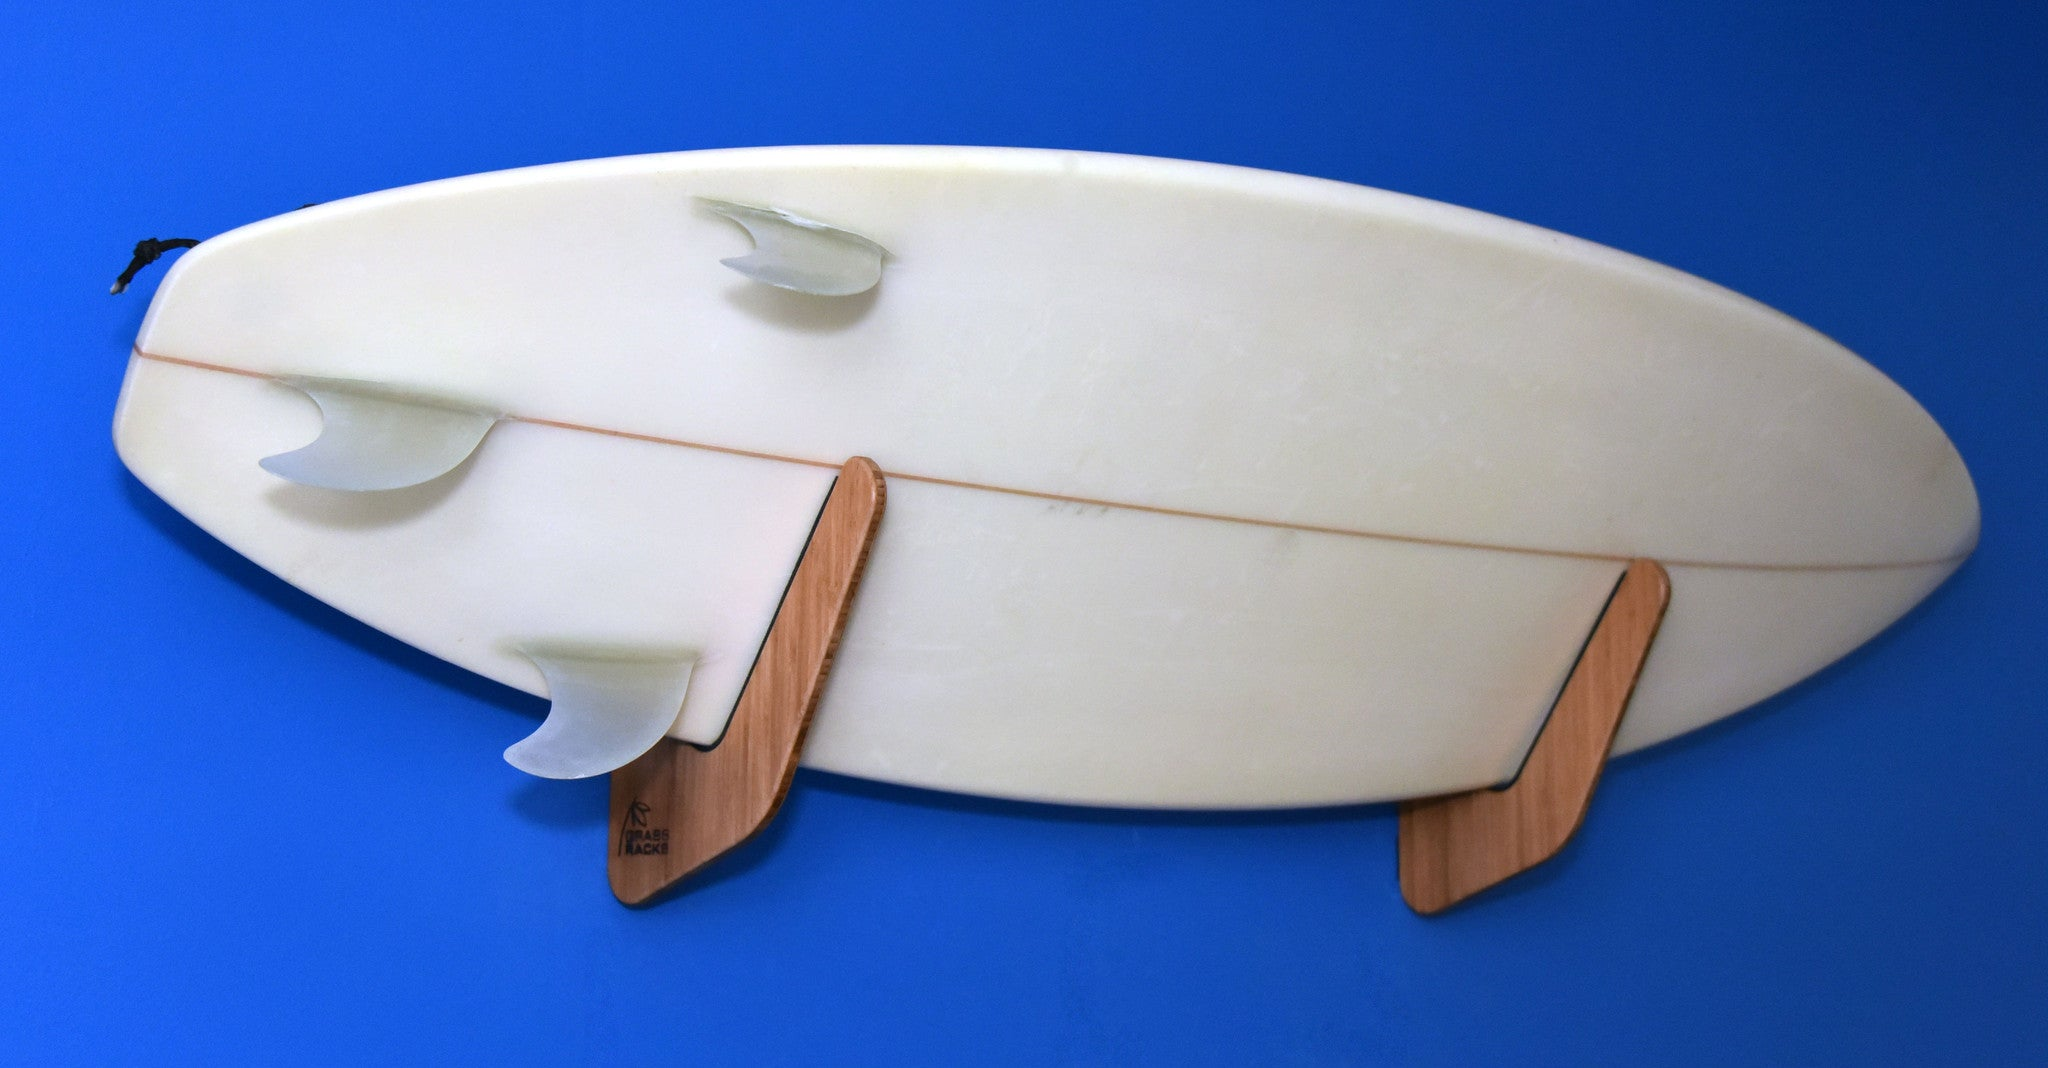 Bamboo Surfboard Rack | Horizontal Wall-Mounted Indoor and Garage - The Kaua'i Series